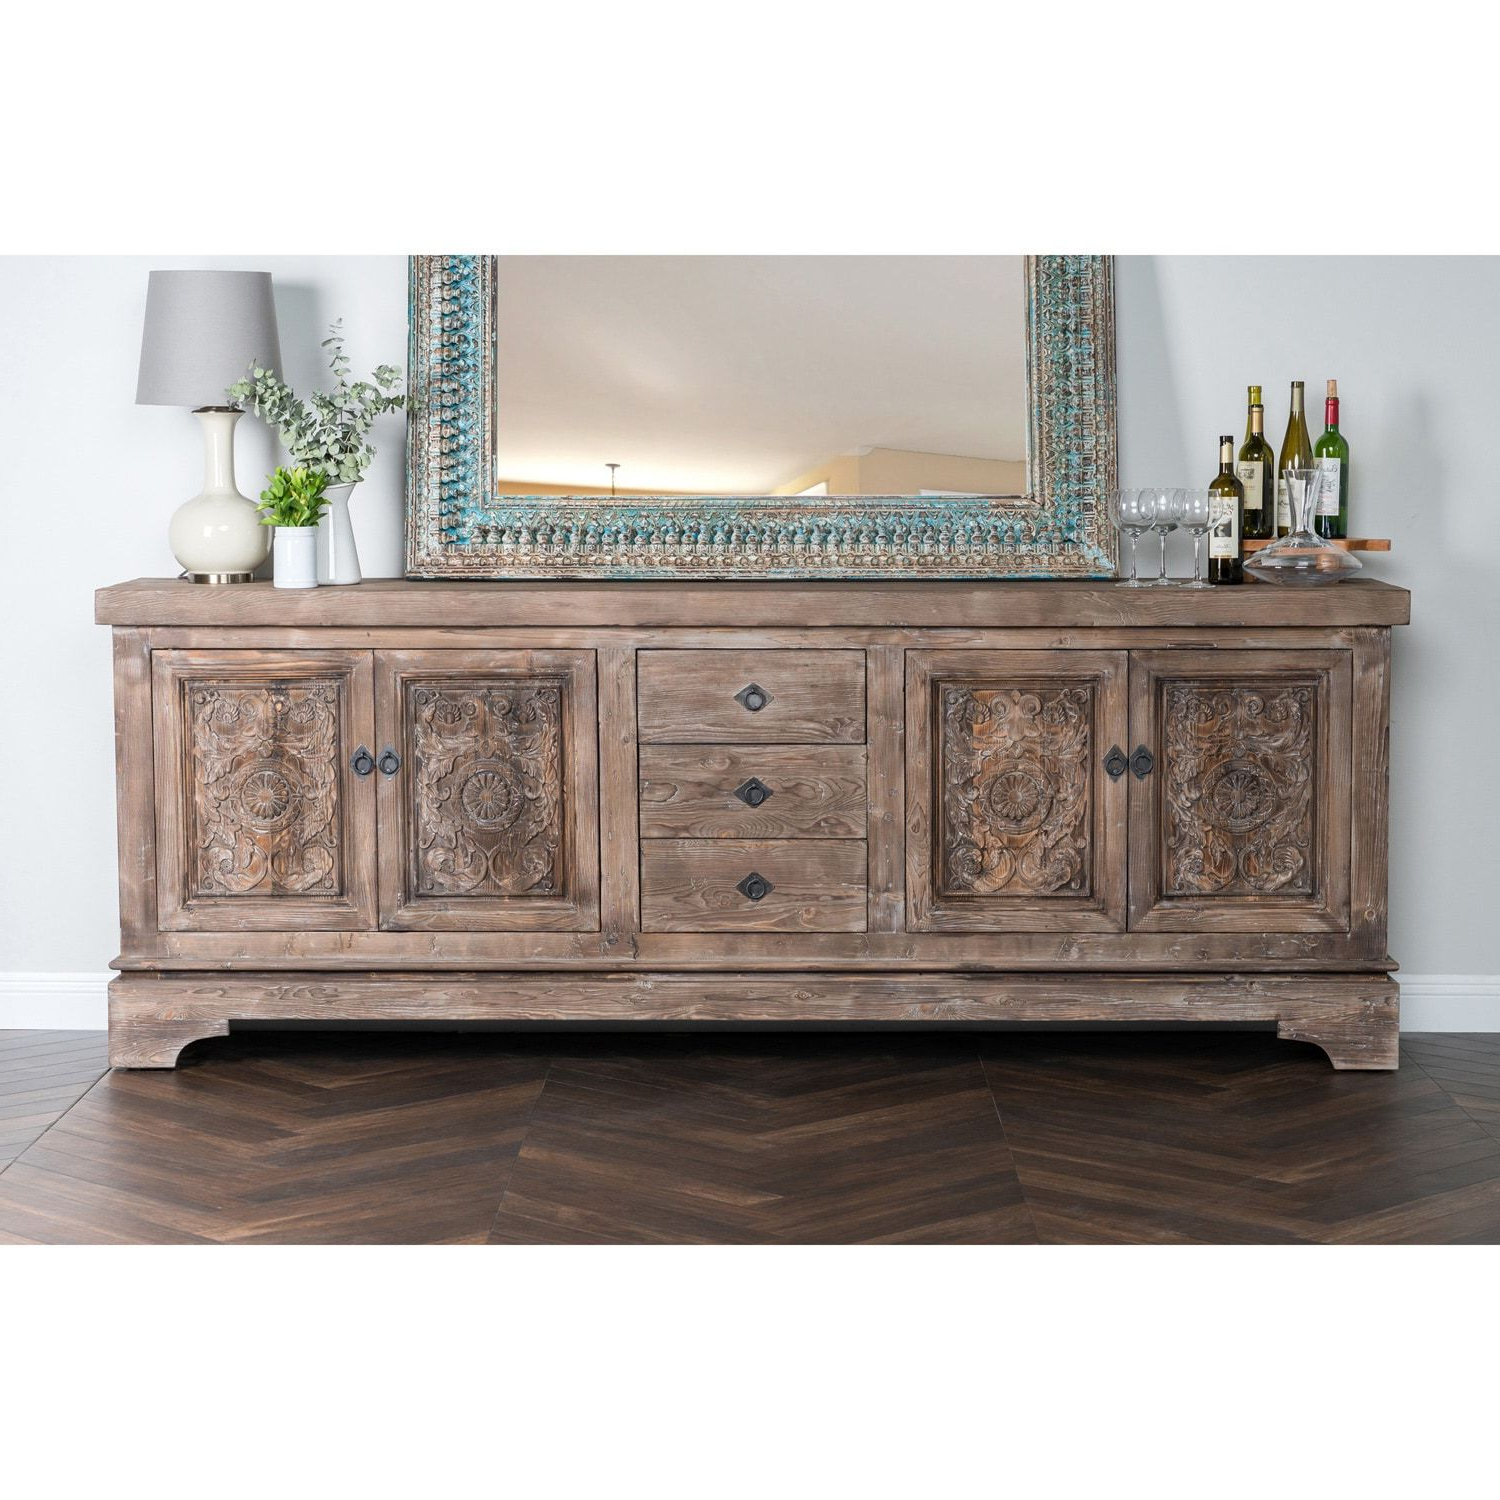 Allen Rustic Taupe Reclaimed Pine 106 Inch Sideboard With Regard To Chalus Sideboards (View 2 of 20)